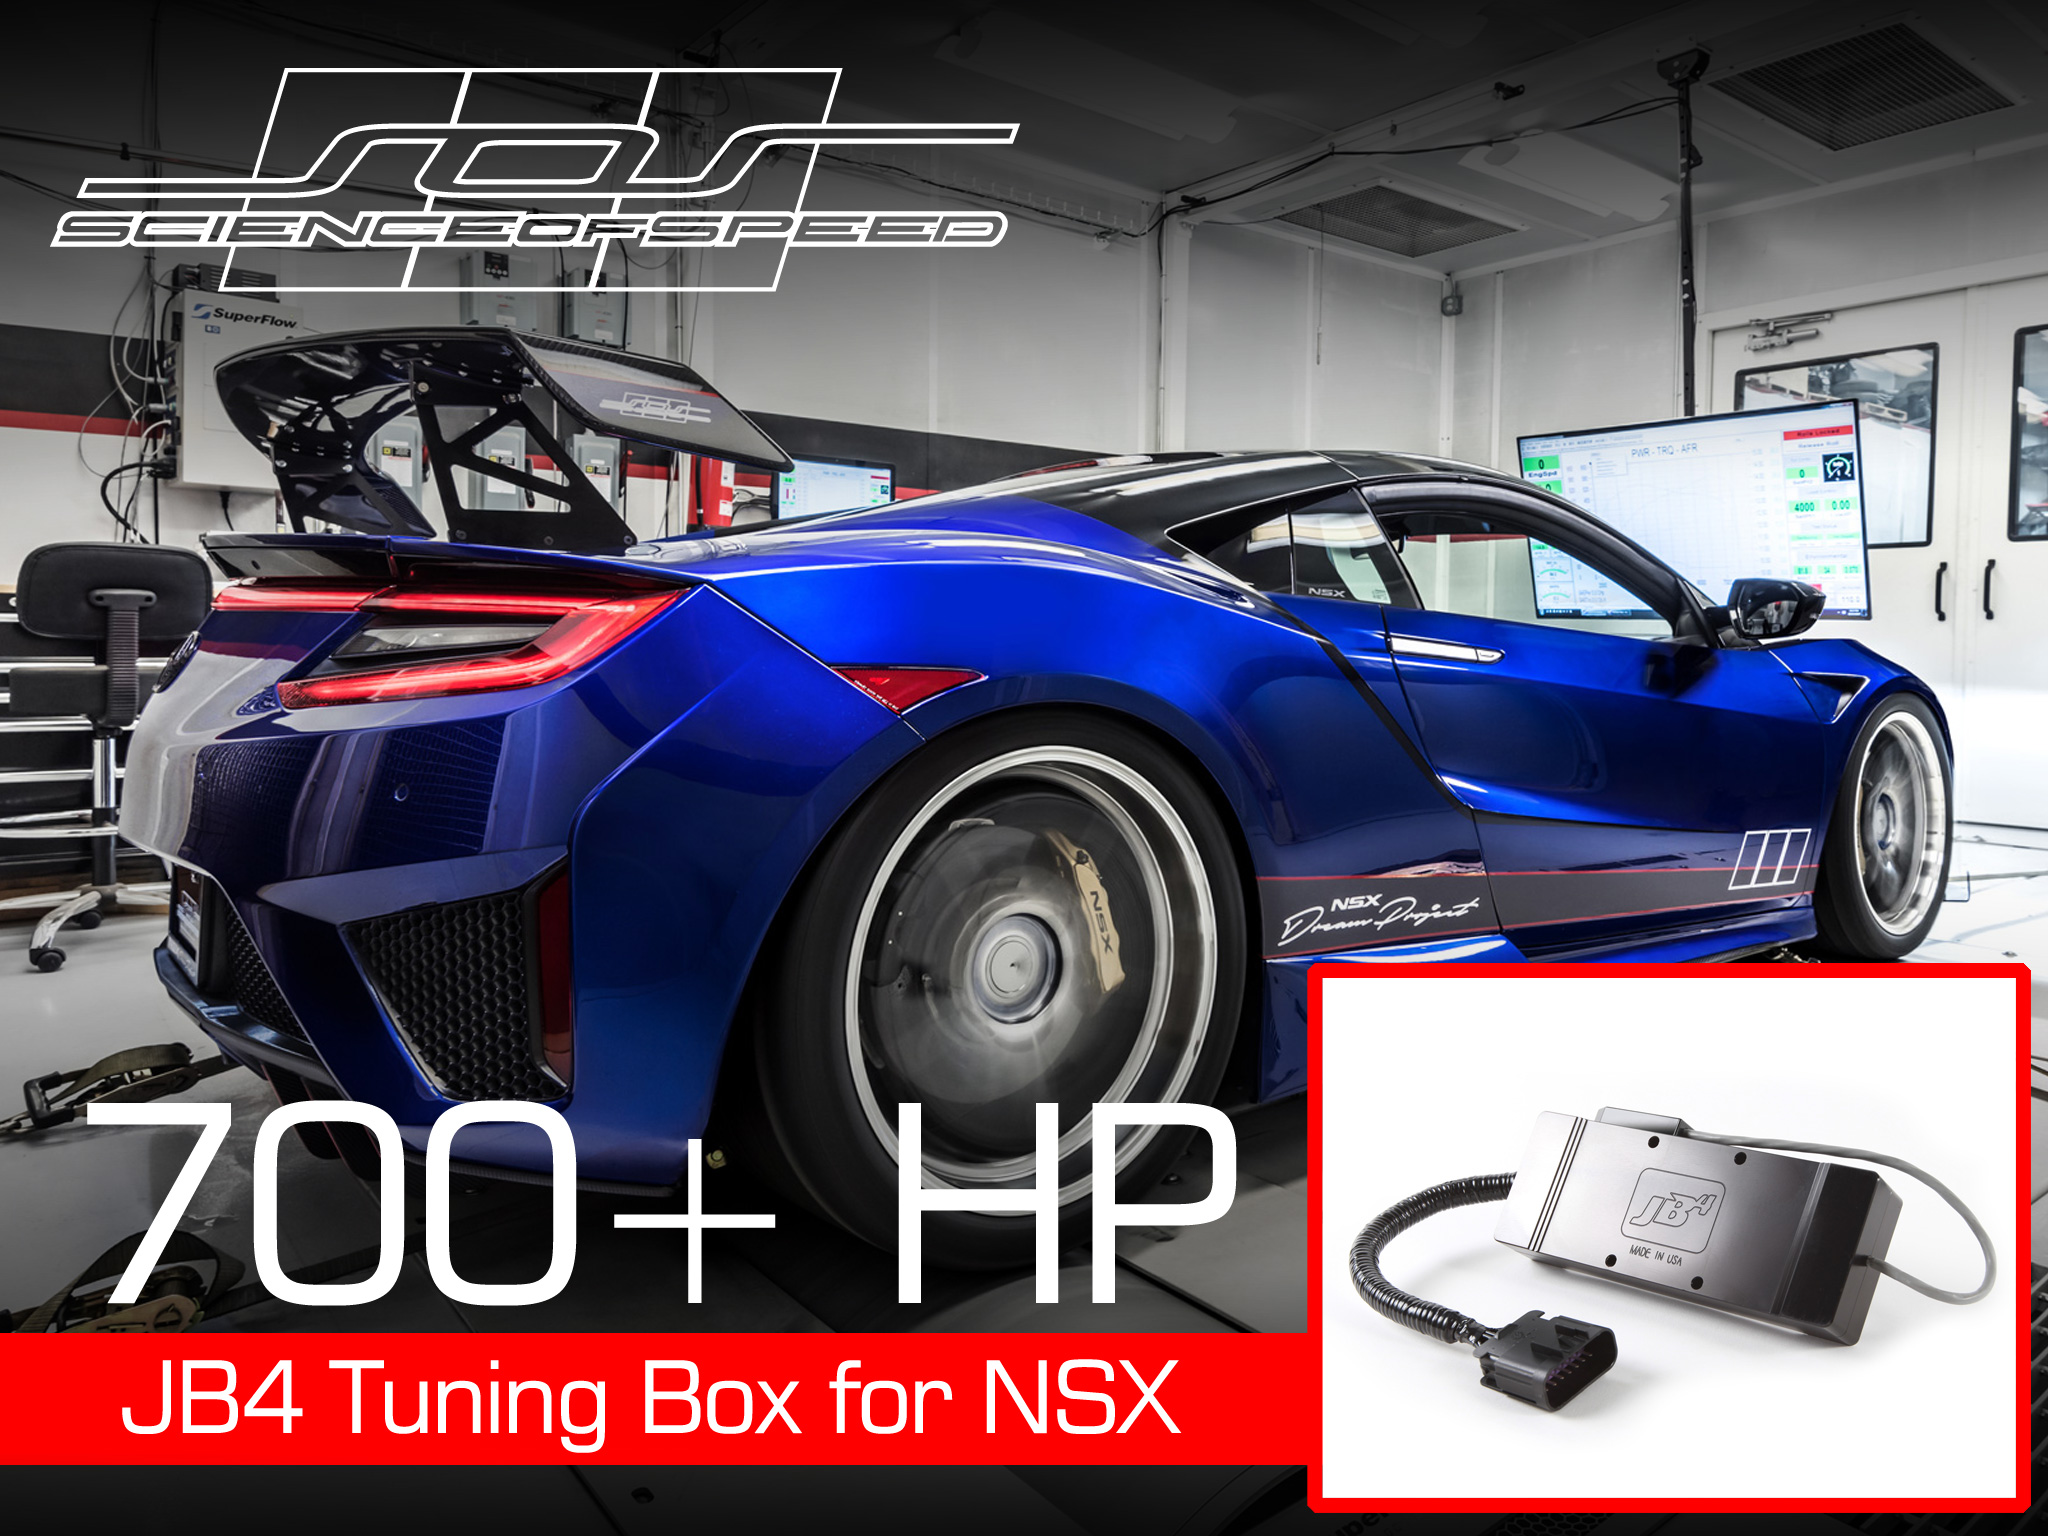 Engine Tuning Product For The Second Gen Nsx Jb4 Tuning Box From Scienceofspeed Part 3 Of 3 Scienceofspeed